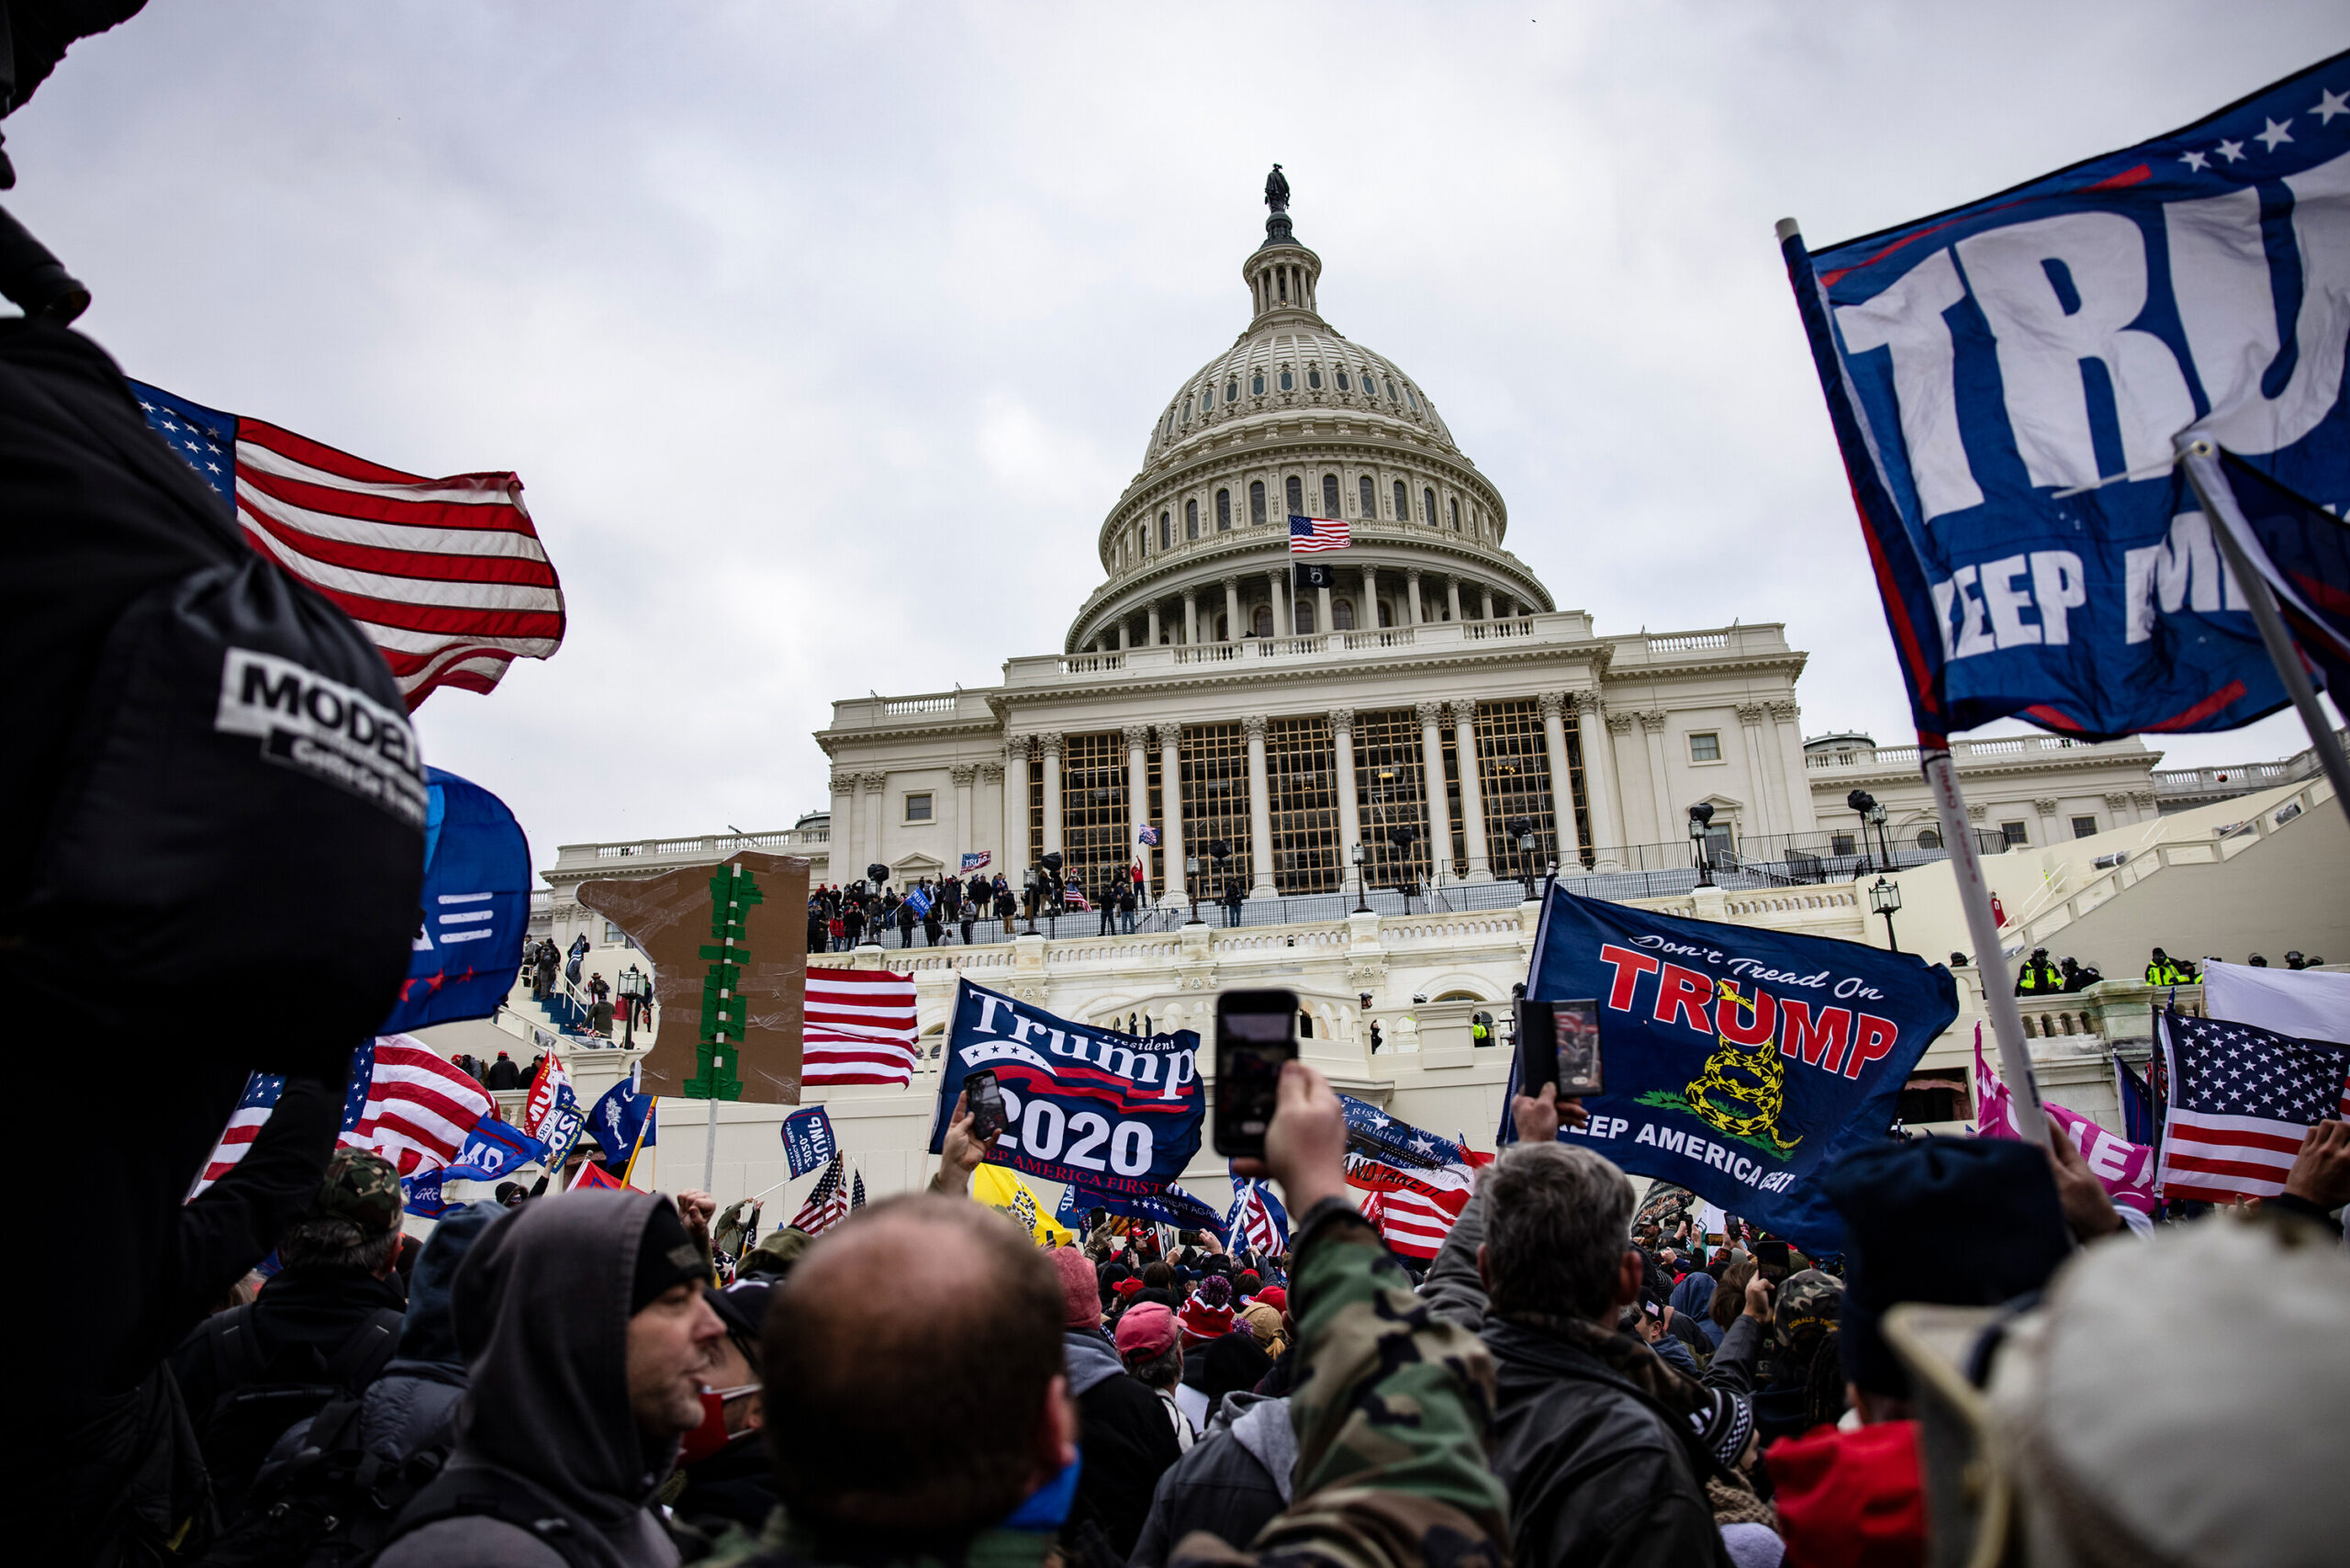 <i>Samuel Corum/Getty Images</i><br/>Pro-Trump supporters storm the U.S. Capitol following a rally with President Donald Trump on January 6. The Justice Department formally declined to assert executive privilege for potential testimony of at least some witnesses related to the January 6 Capitol attack.